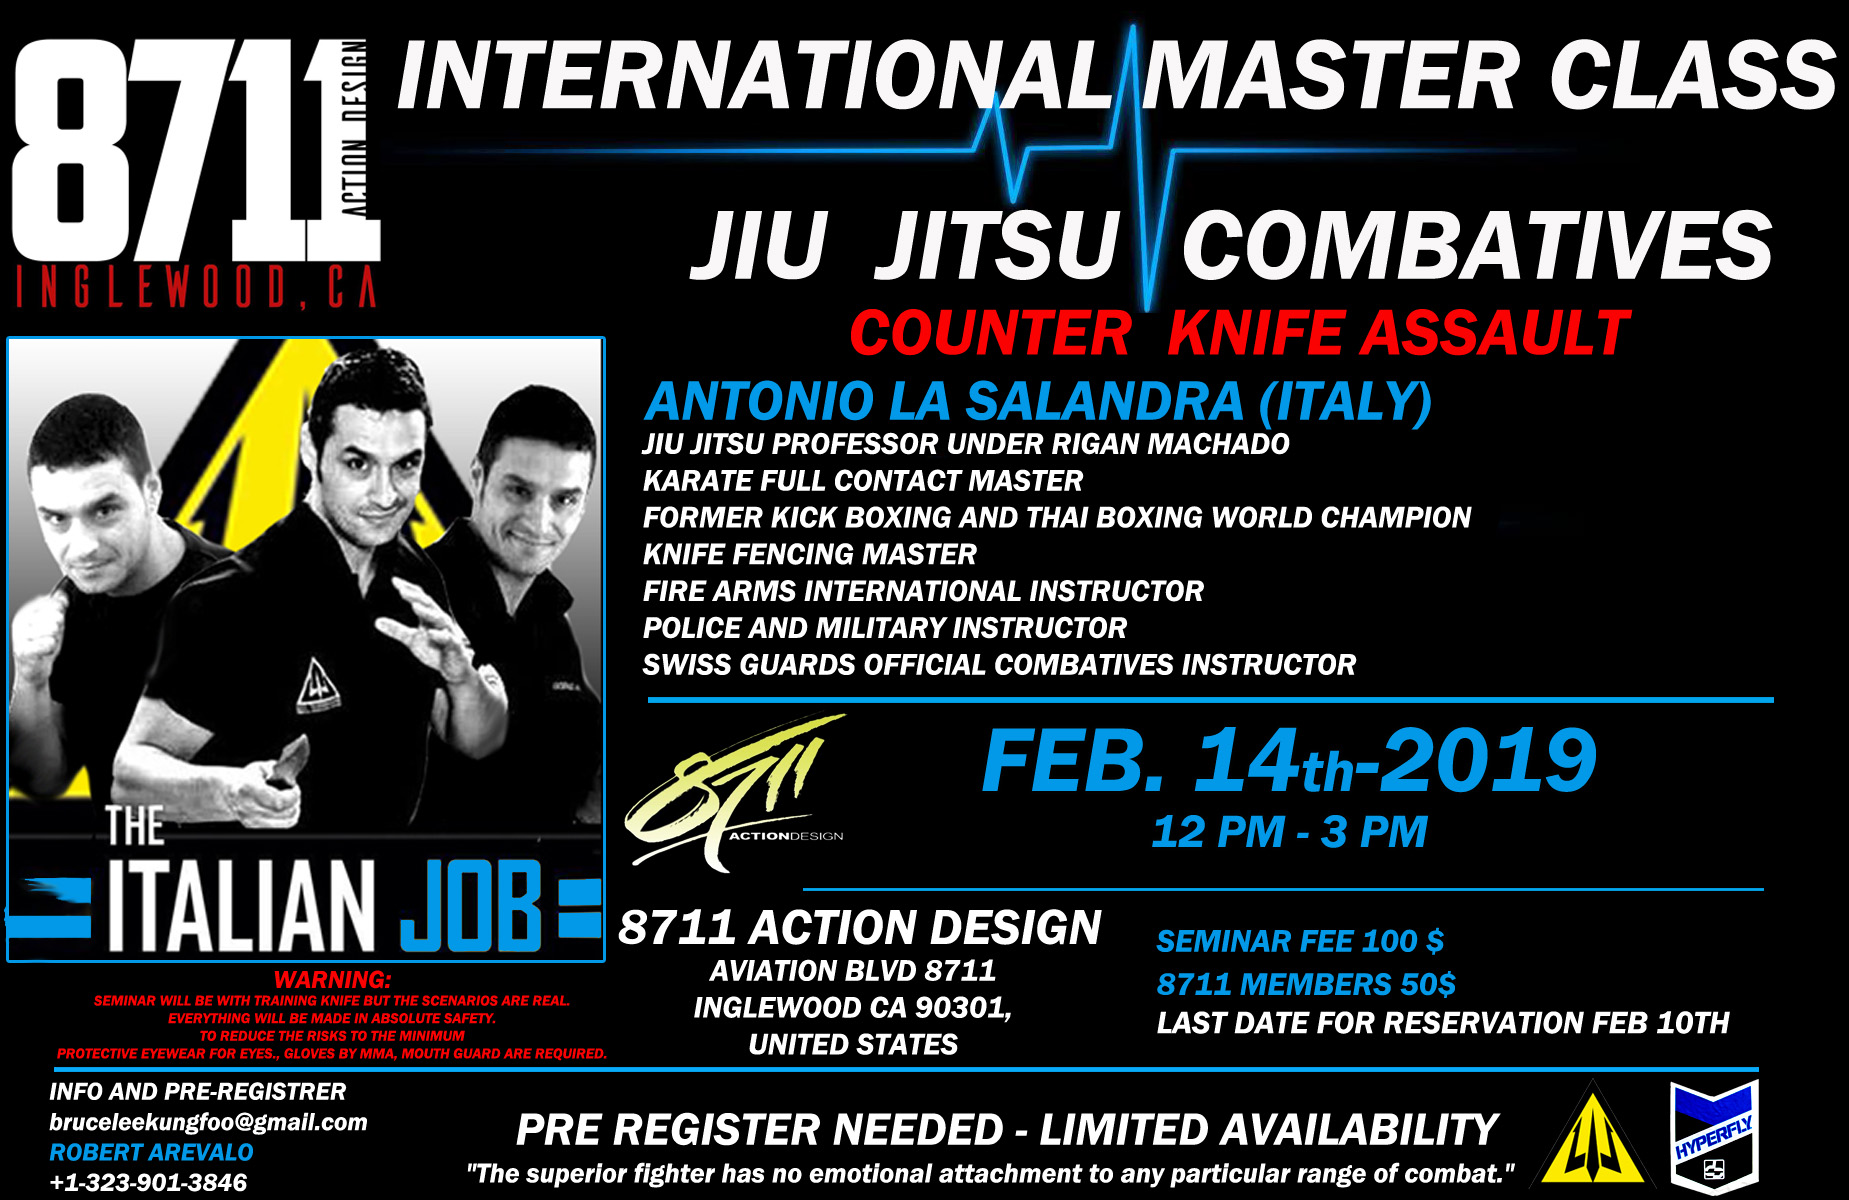 INTERNATIONAL MASTER CLASS BY WORLD RENOWNED  BLACK BELT Master Antonio la Salandra